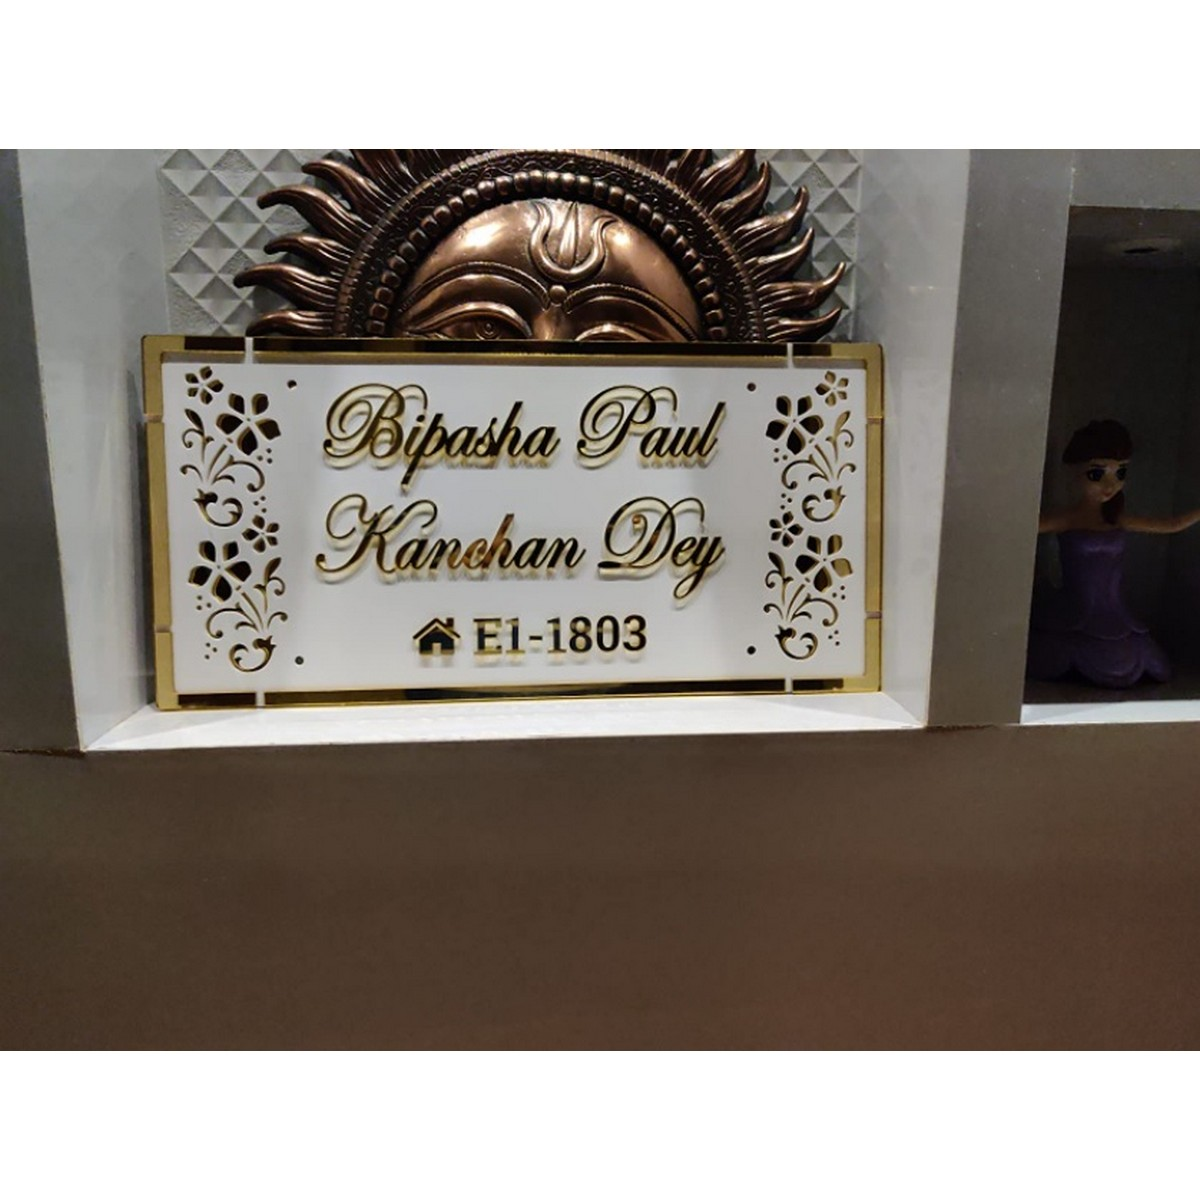 Golden Acrylic Embossed Letters Customized House Name Plate  Golden Acrylic Embossed Letters House Name Plate 2